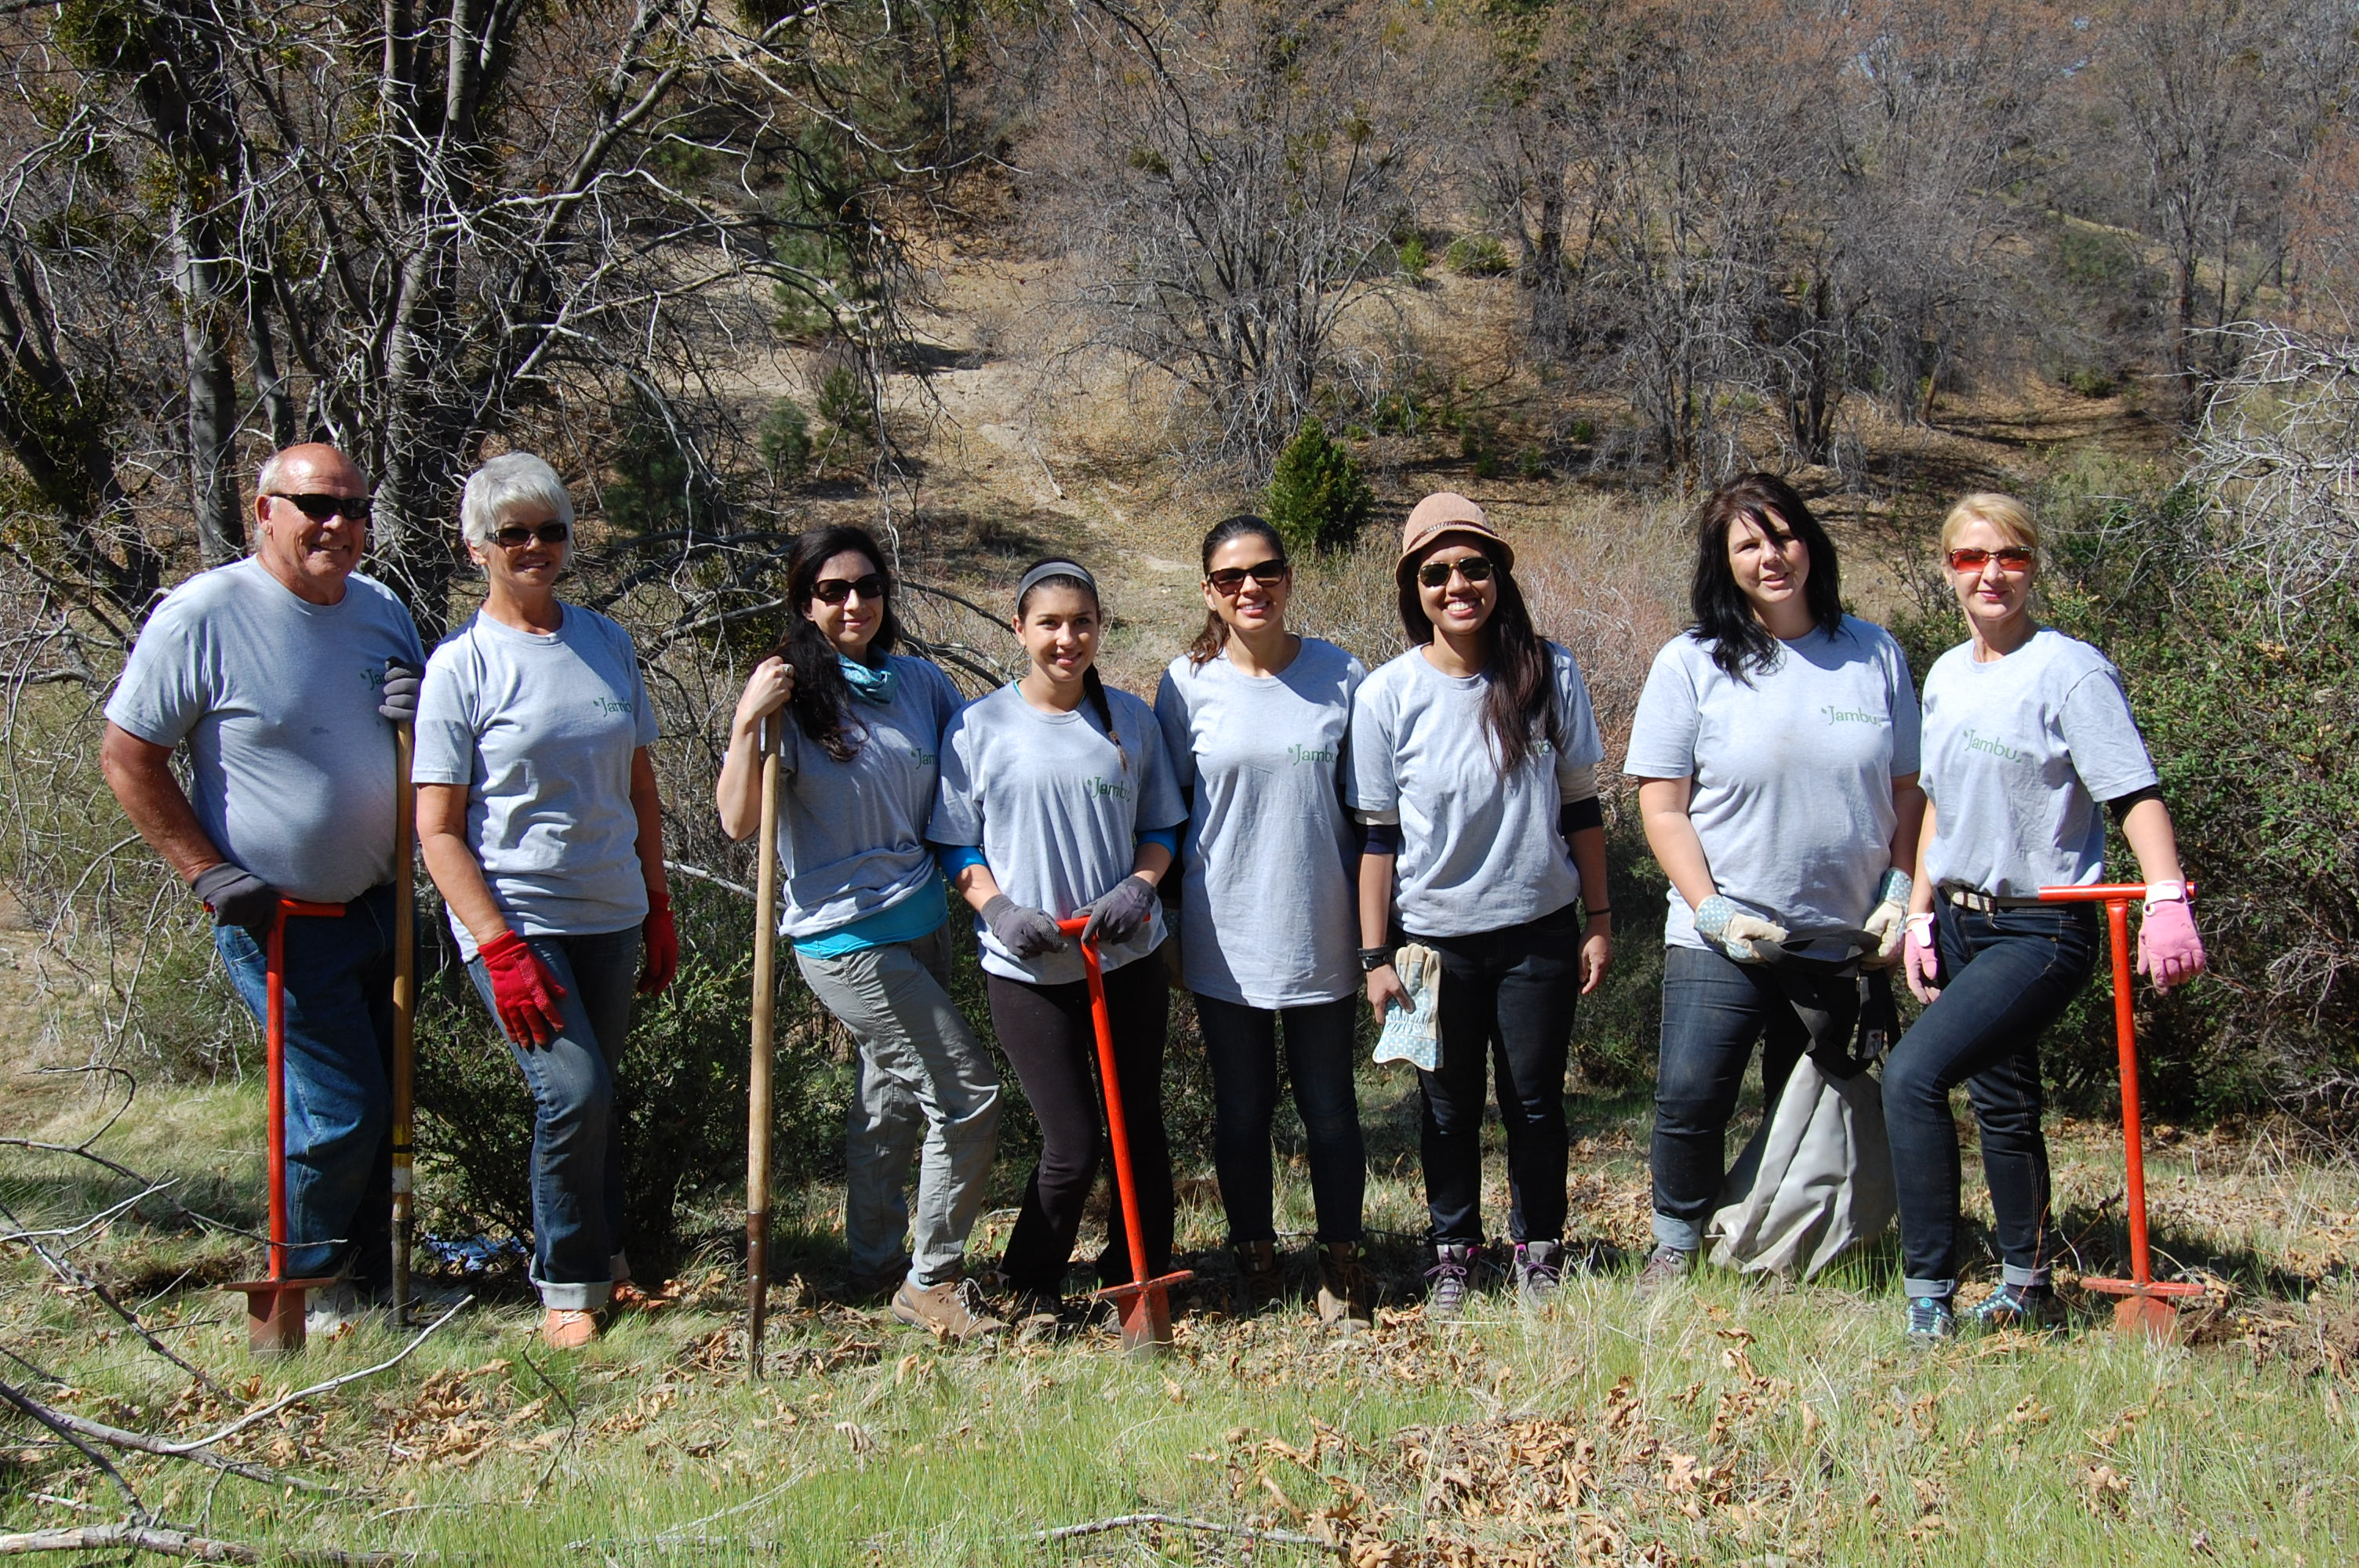 Pamela Jonah's planting team in the San Bernadino Mountains.